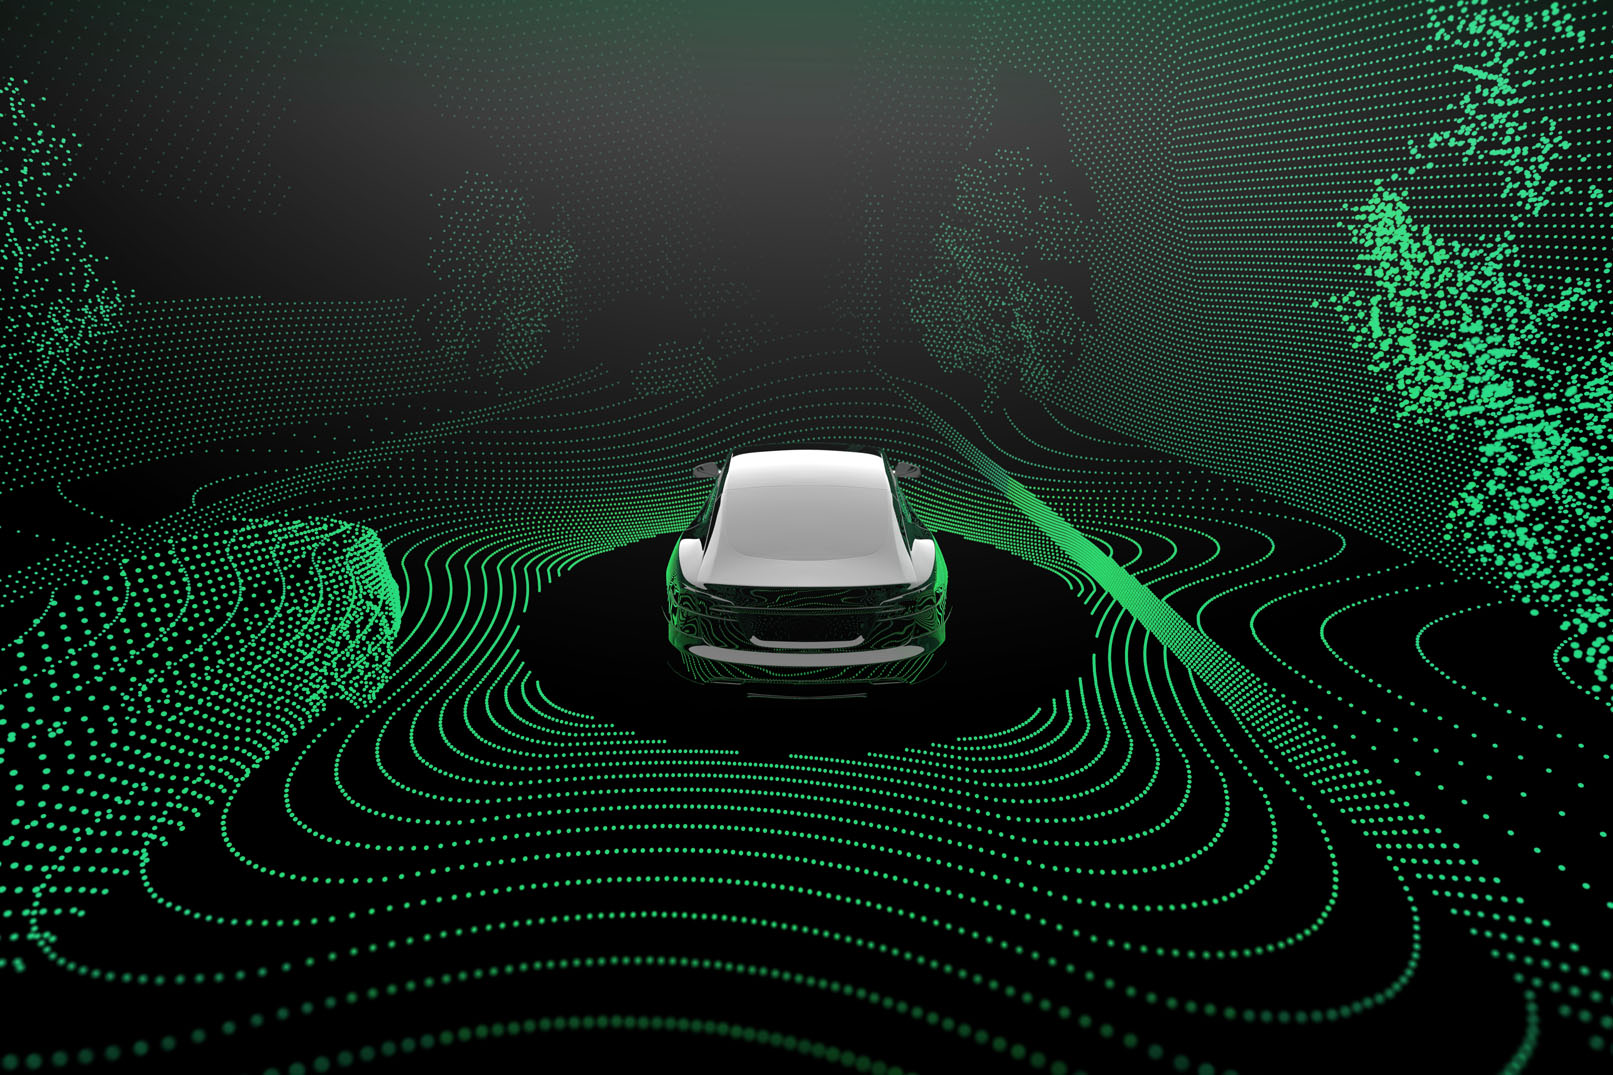 Example image of what radar can detect around a car